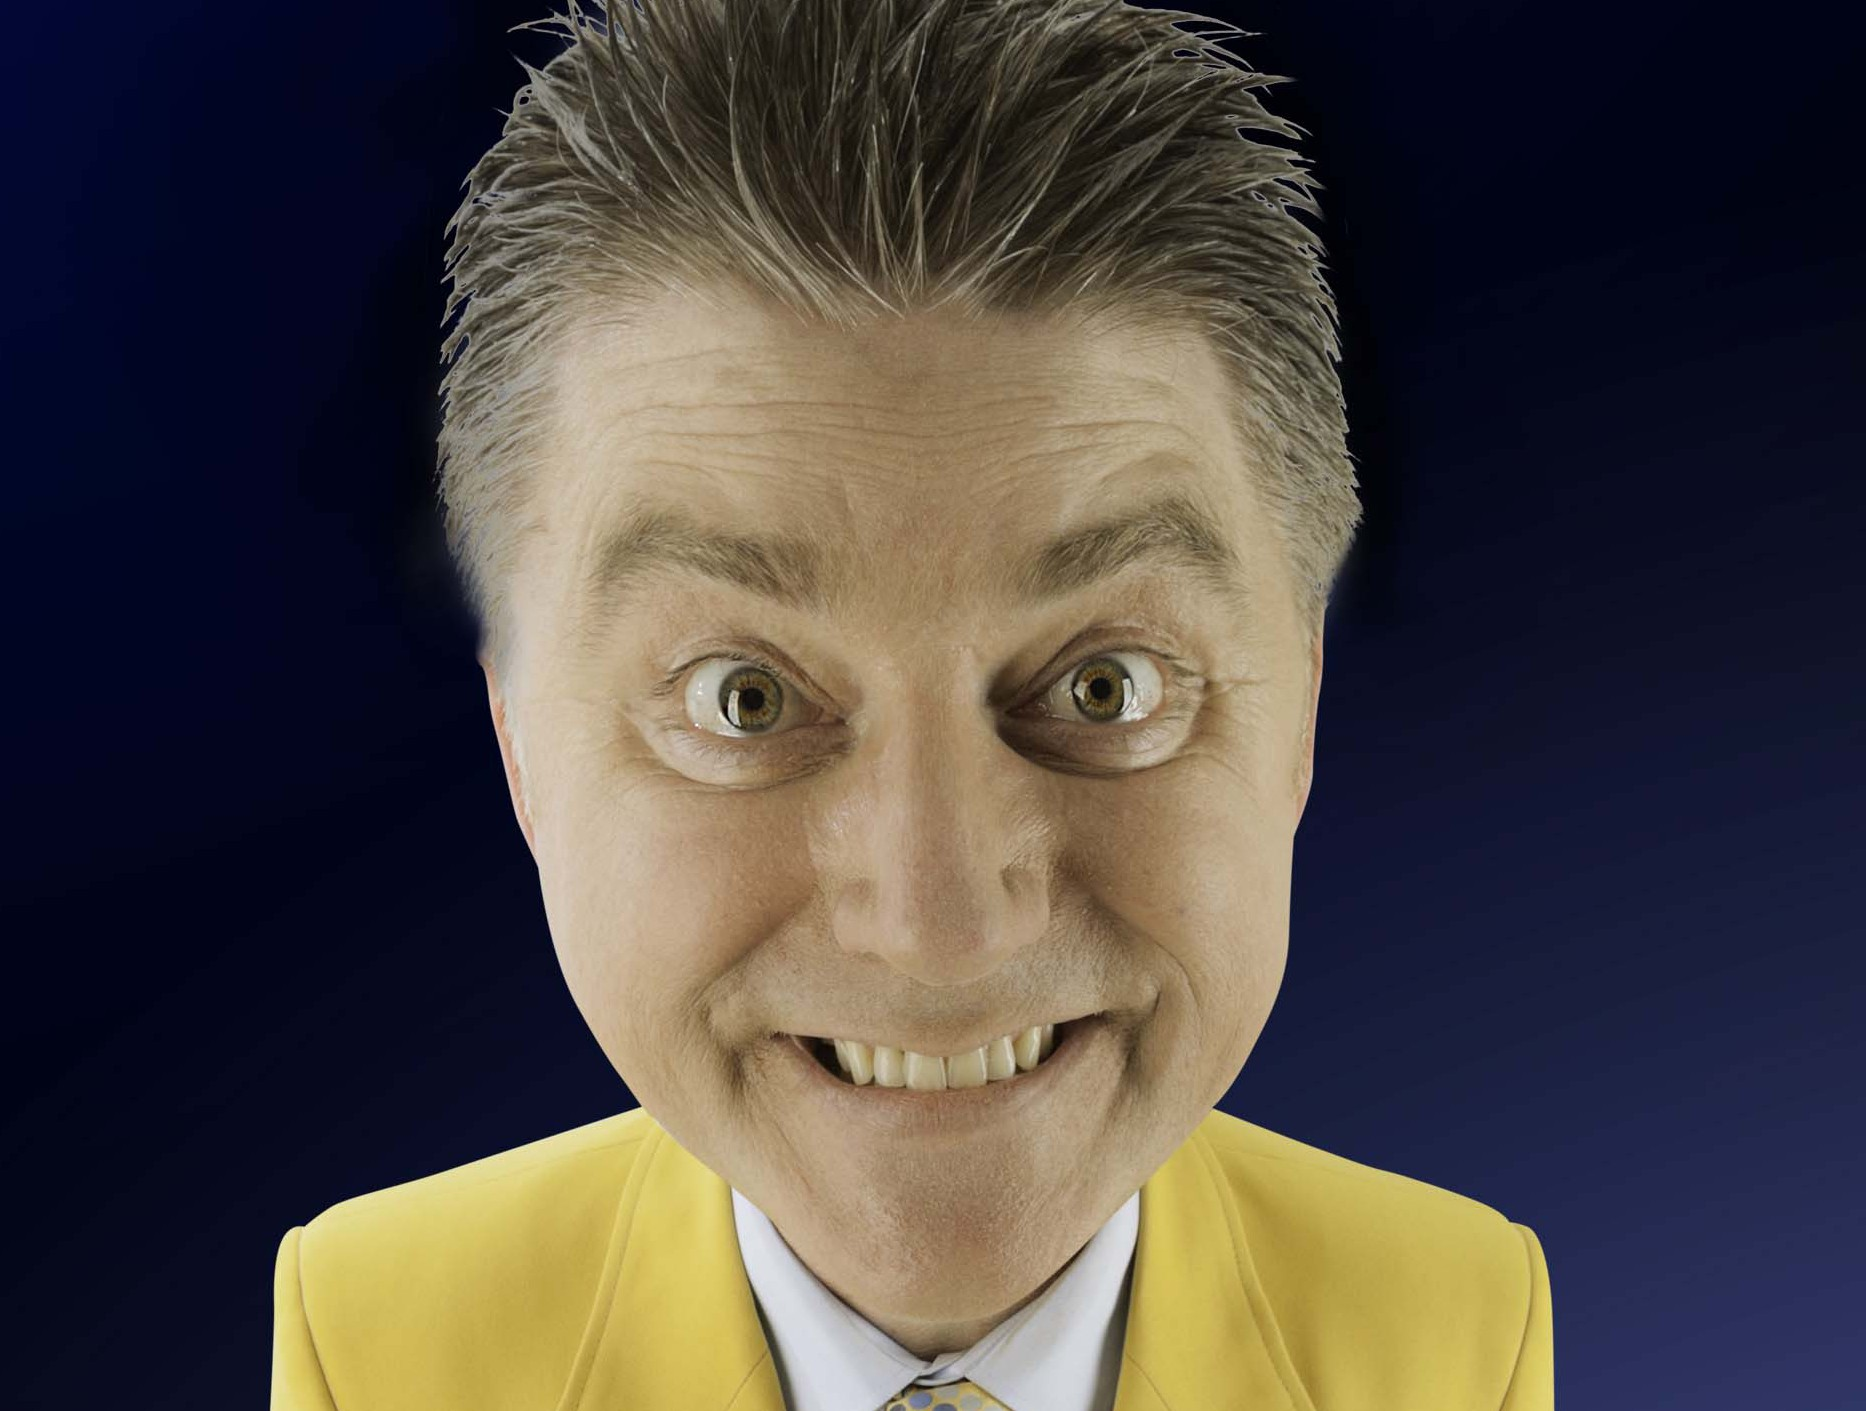 PAT SHORTT: I AM THE BAND